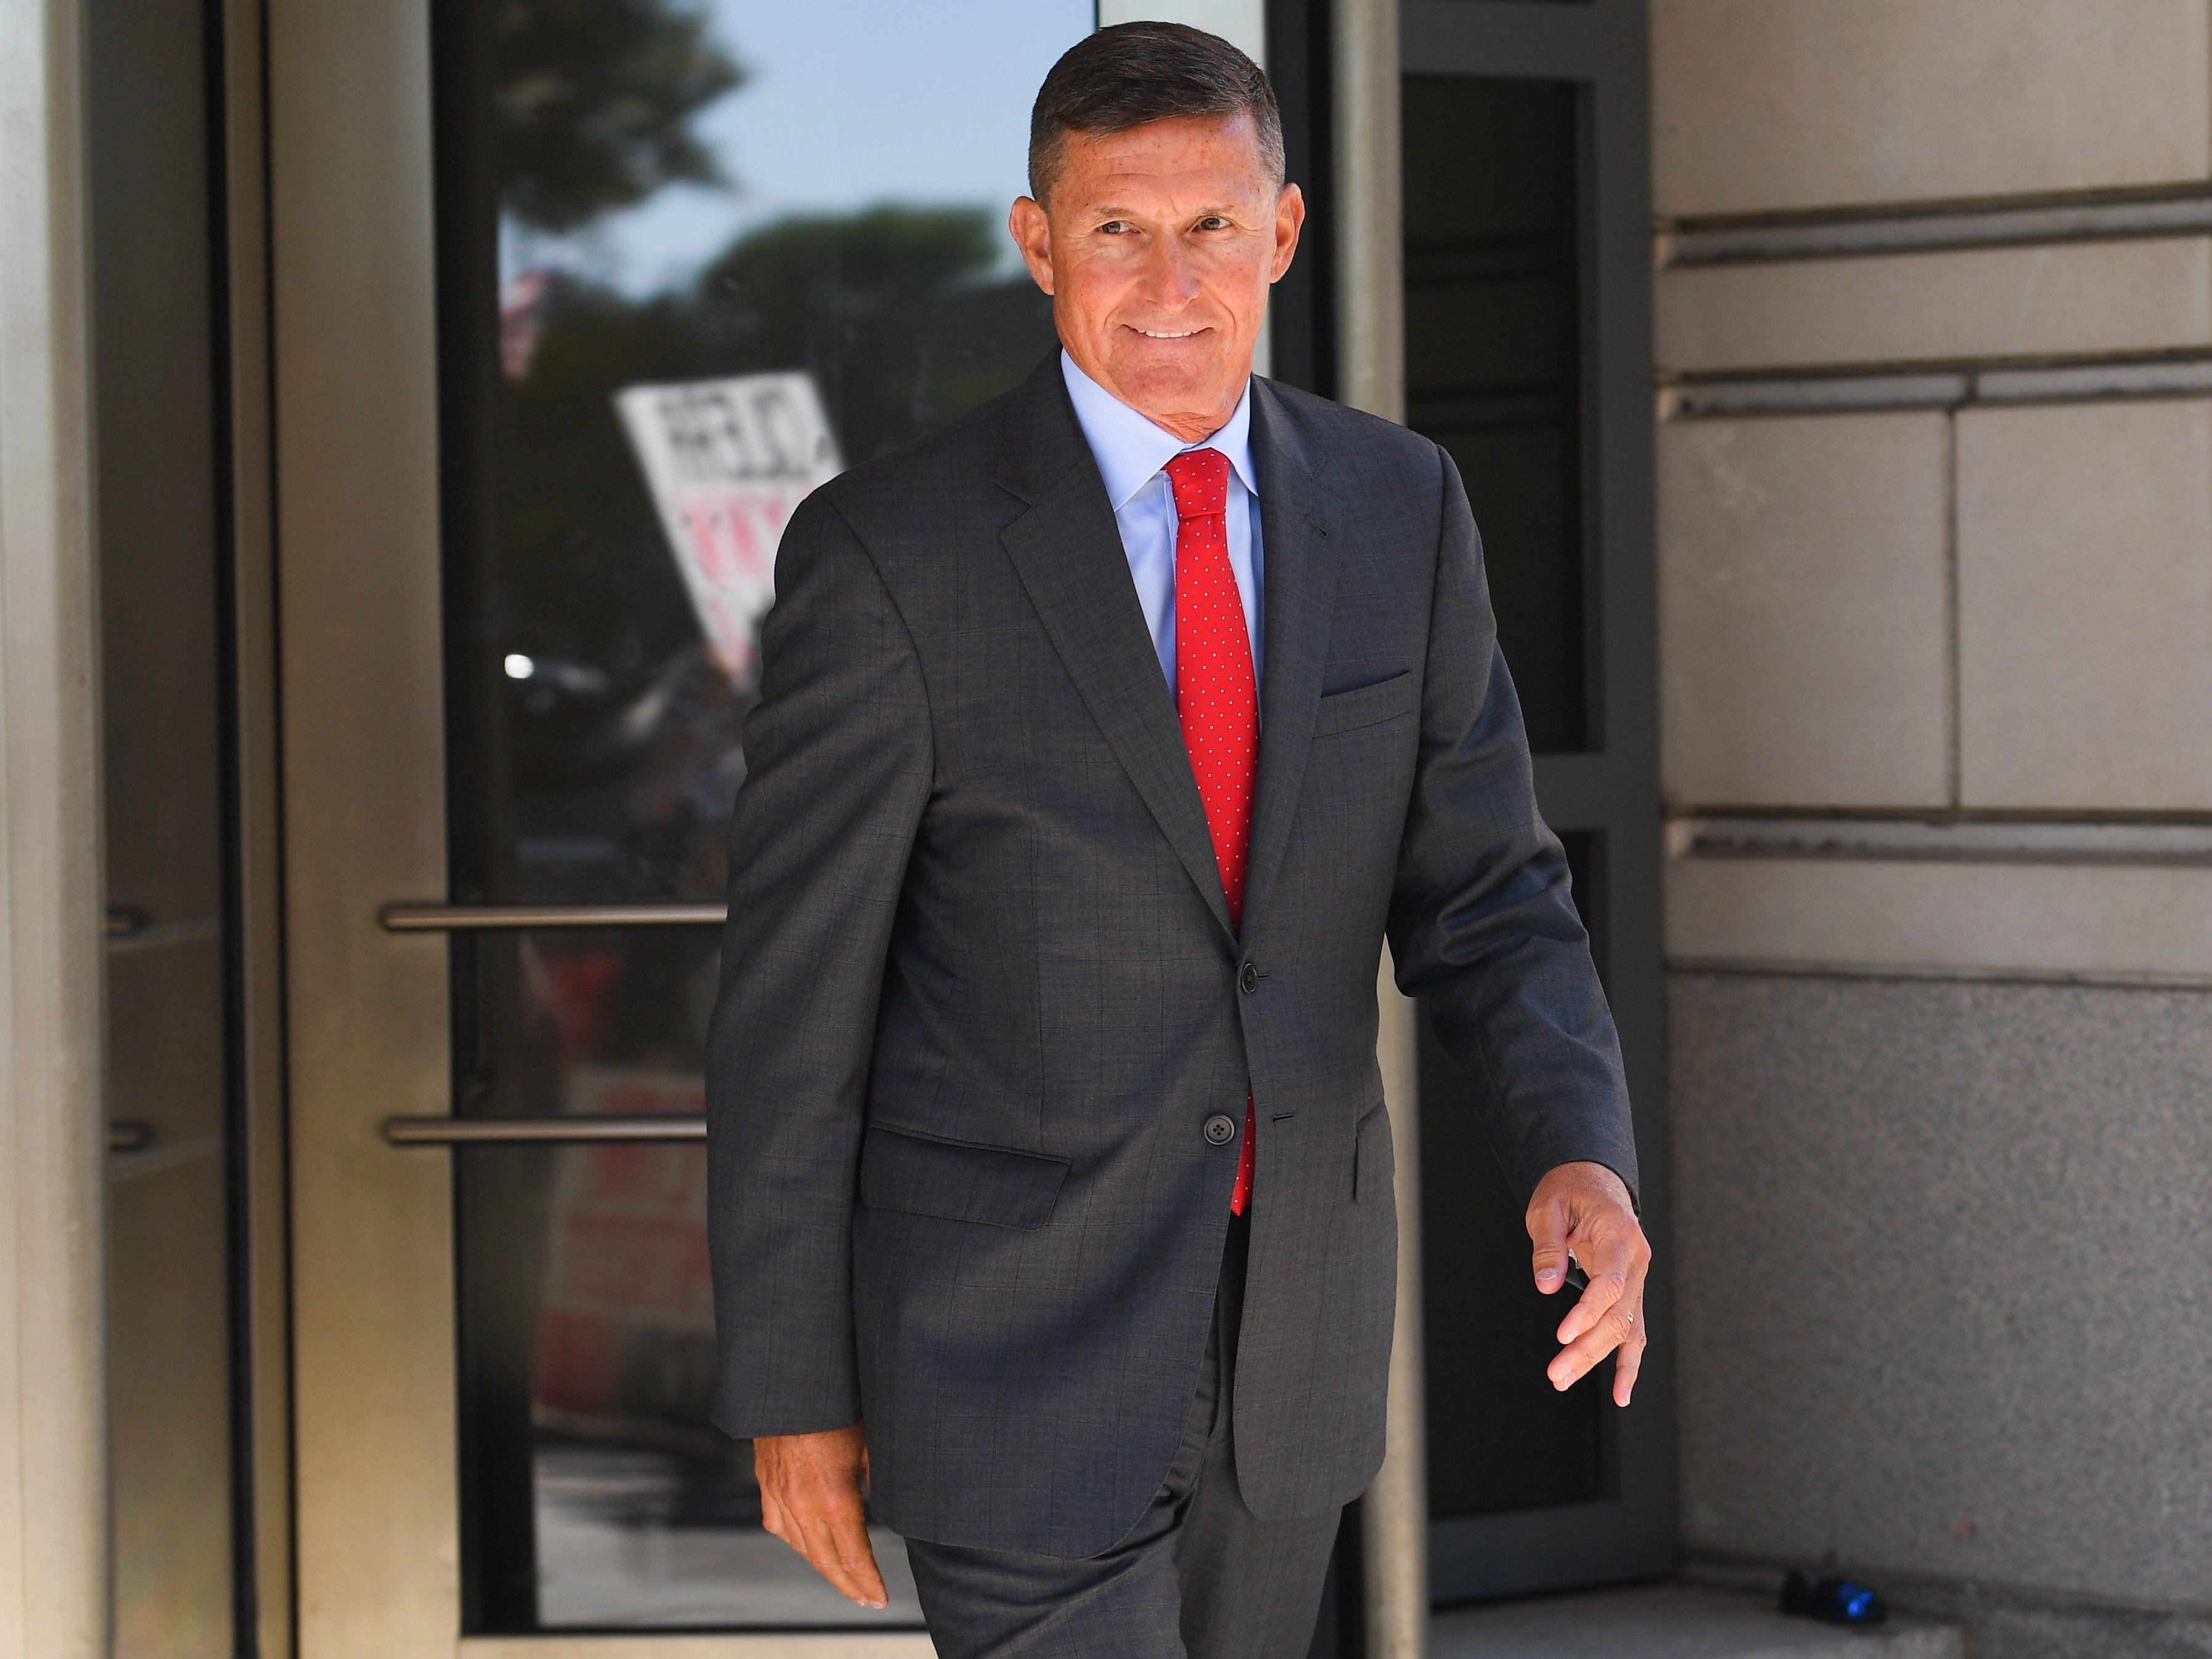 Former national security adviser Michael Flynn leaves after an appearance at U.S. District Court for the District of Columbia.